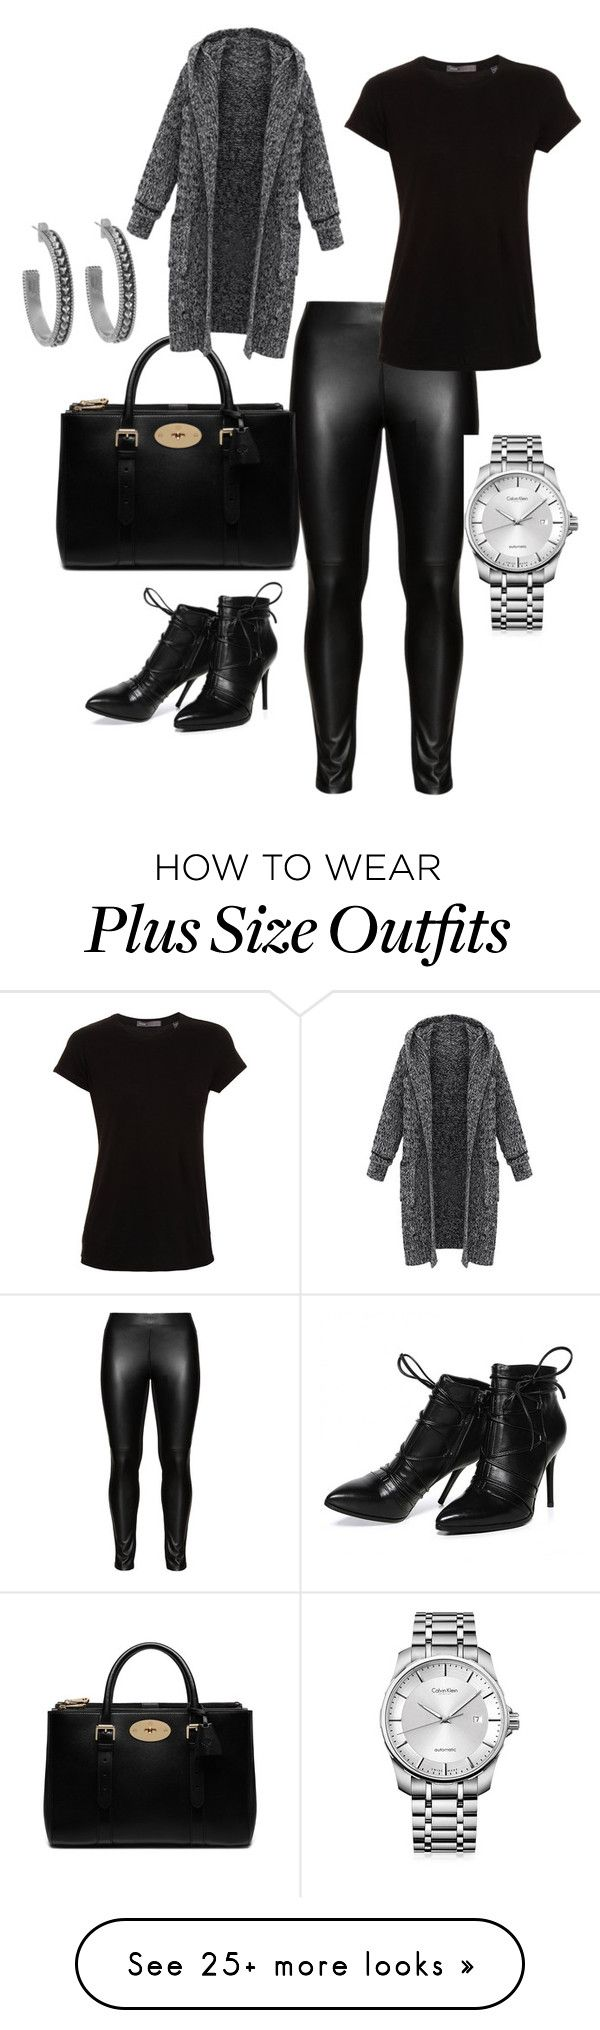 """Untitled #346"" by stylemirror on Polyvore featuring Studio, Mulberry, Calvin Klein, Vince, Morea and House of Harlow 1960"